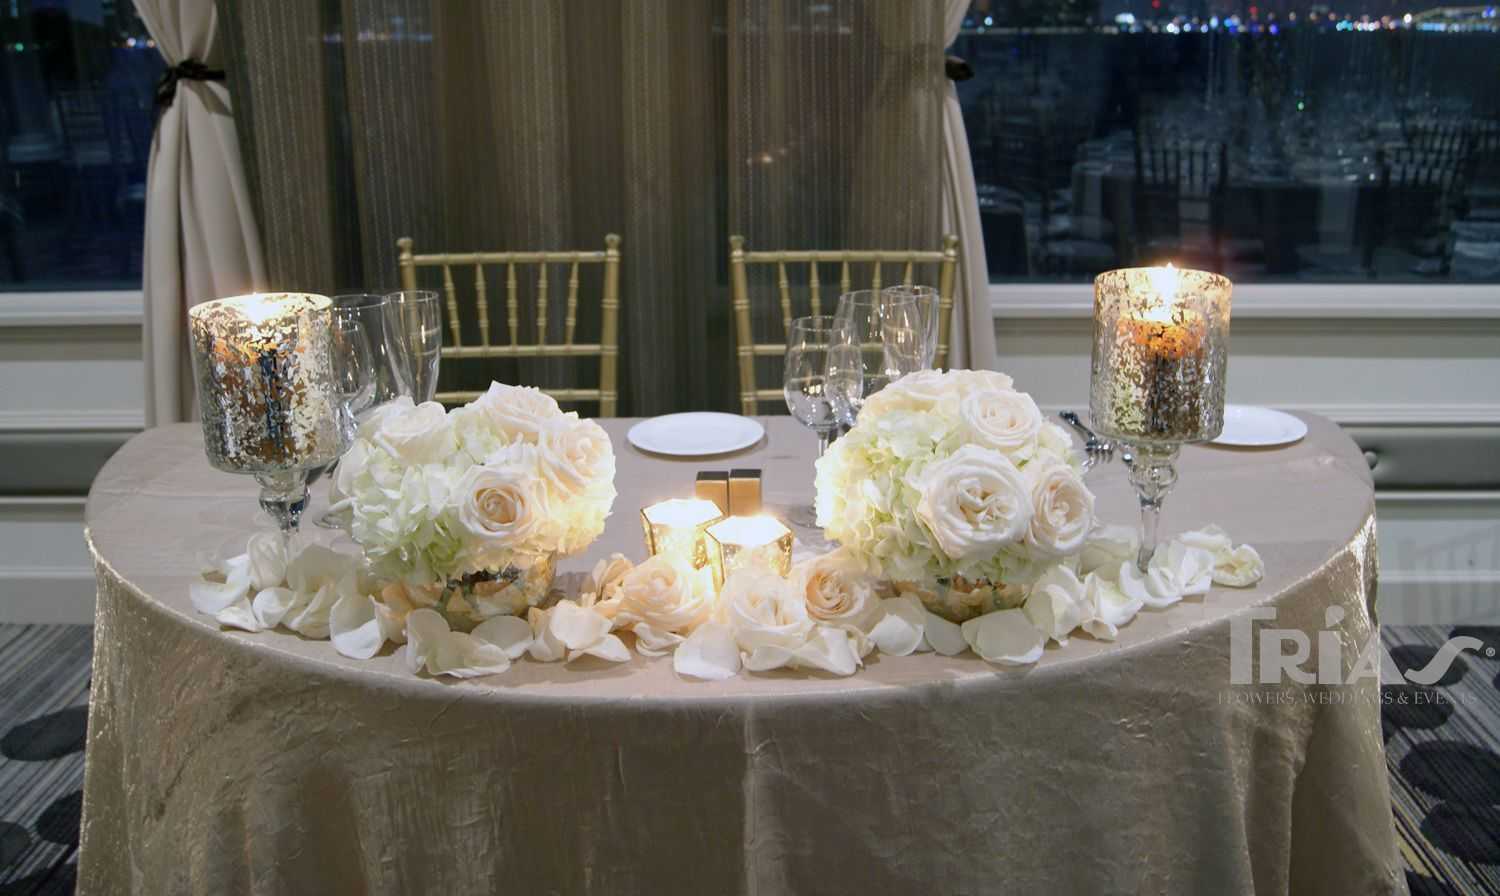 Bride And Groom Table With Gorgeous White Roses